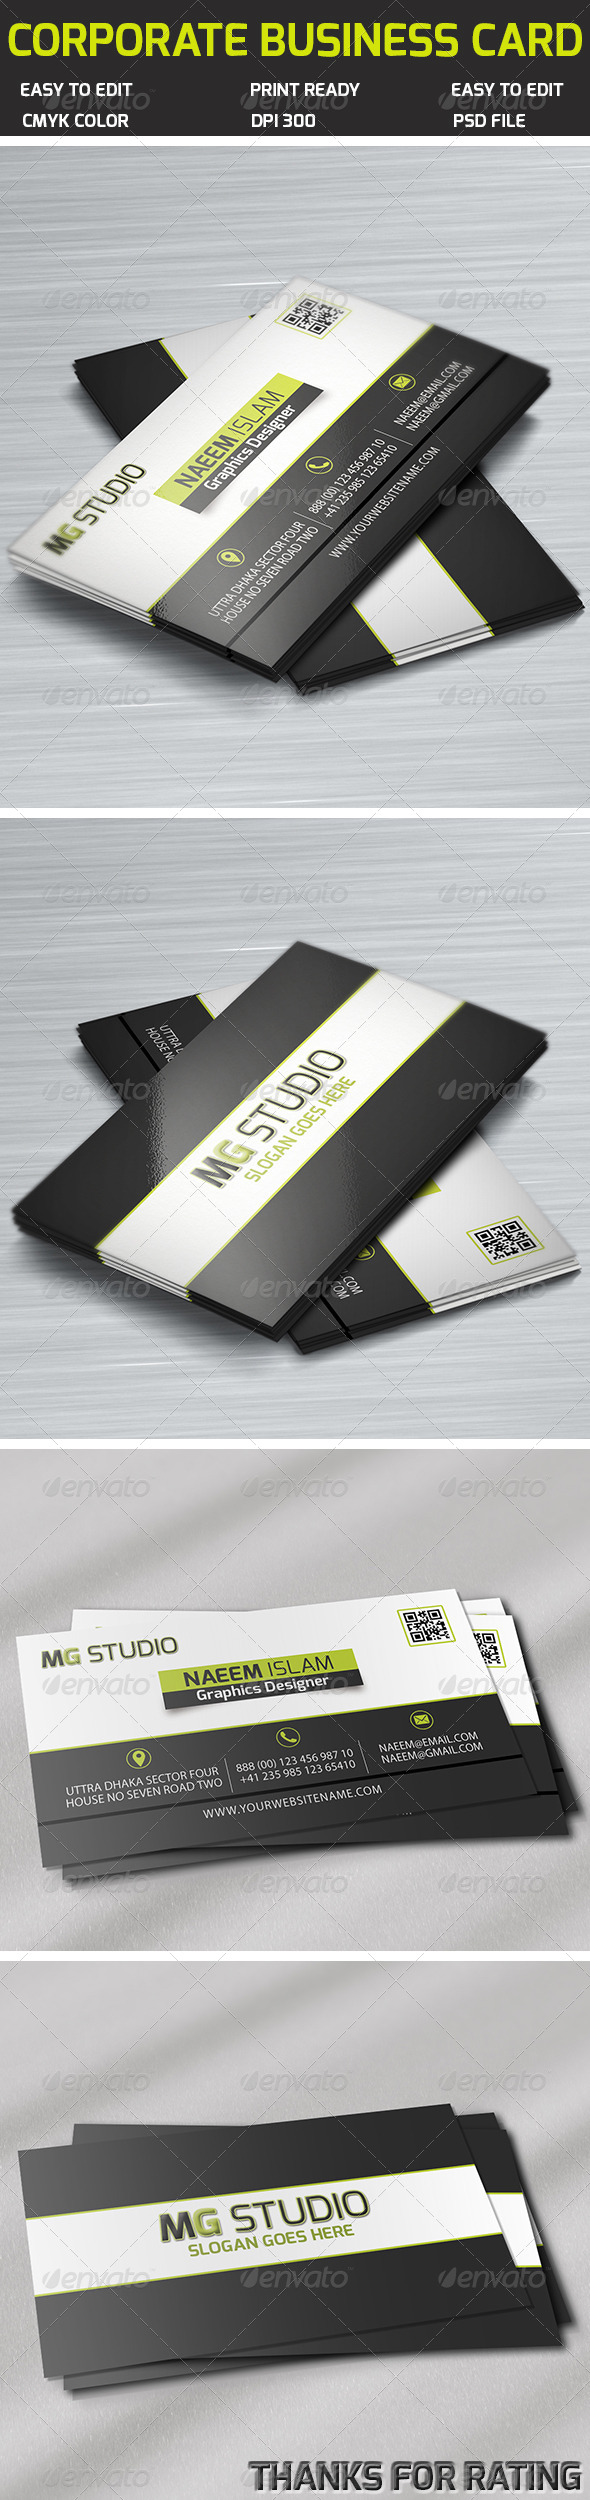 Corporate business card features easy to edit optimized for corporate business card features easy to edit optimized for printing 300 dpi cmyk color mode 352 inch dimension 025 bleed reheart Images